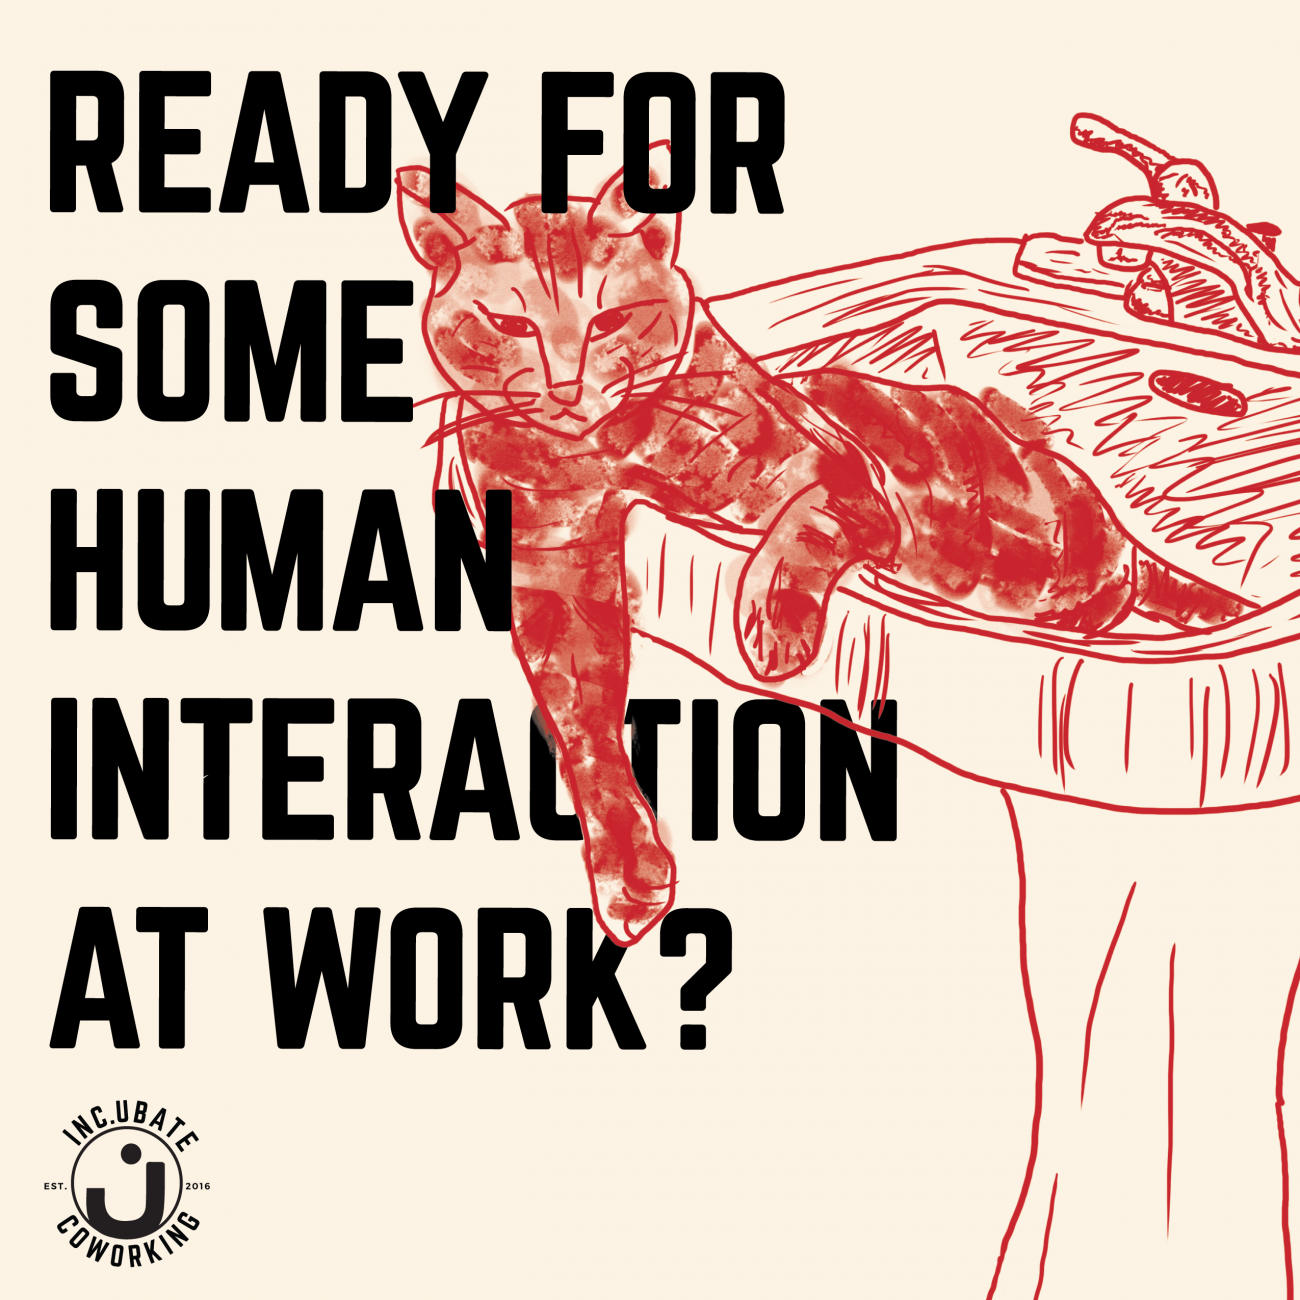 Ready For Some Human Interaction At Work?